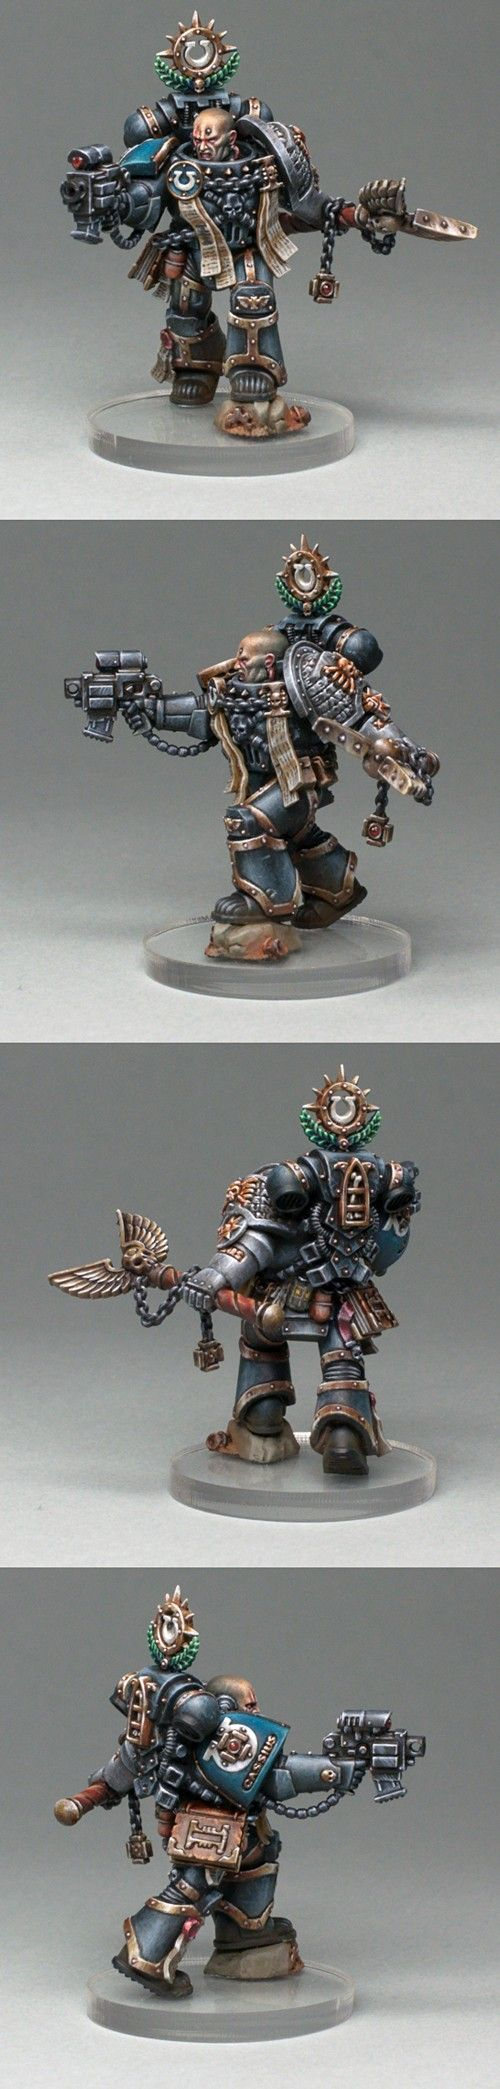 Orthan Cassius from Deathwatch Overkill